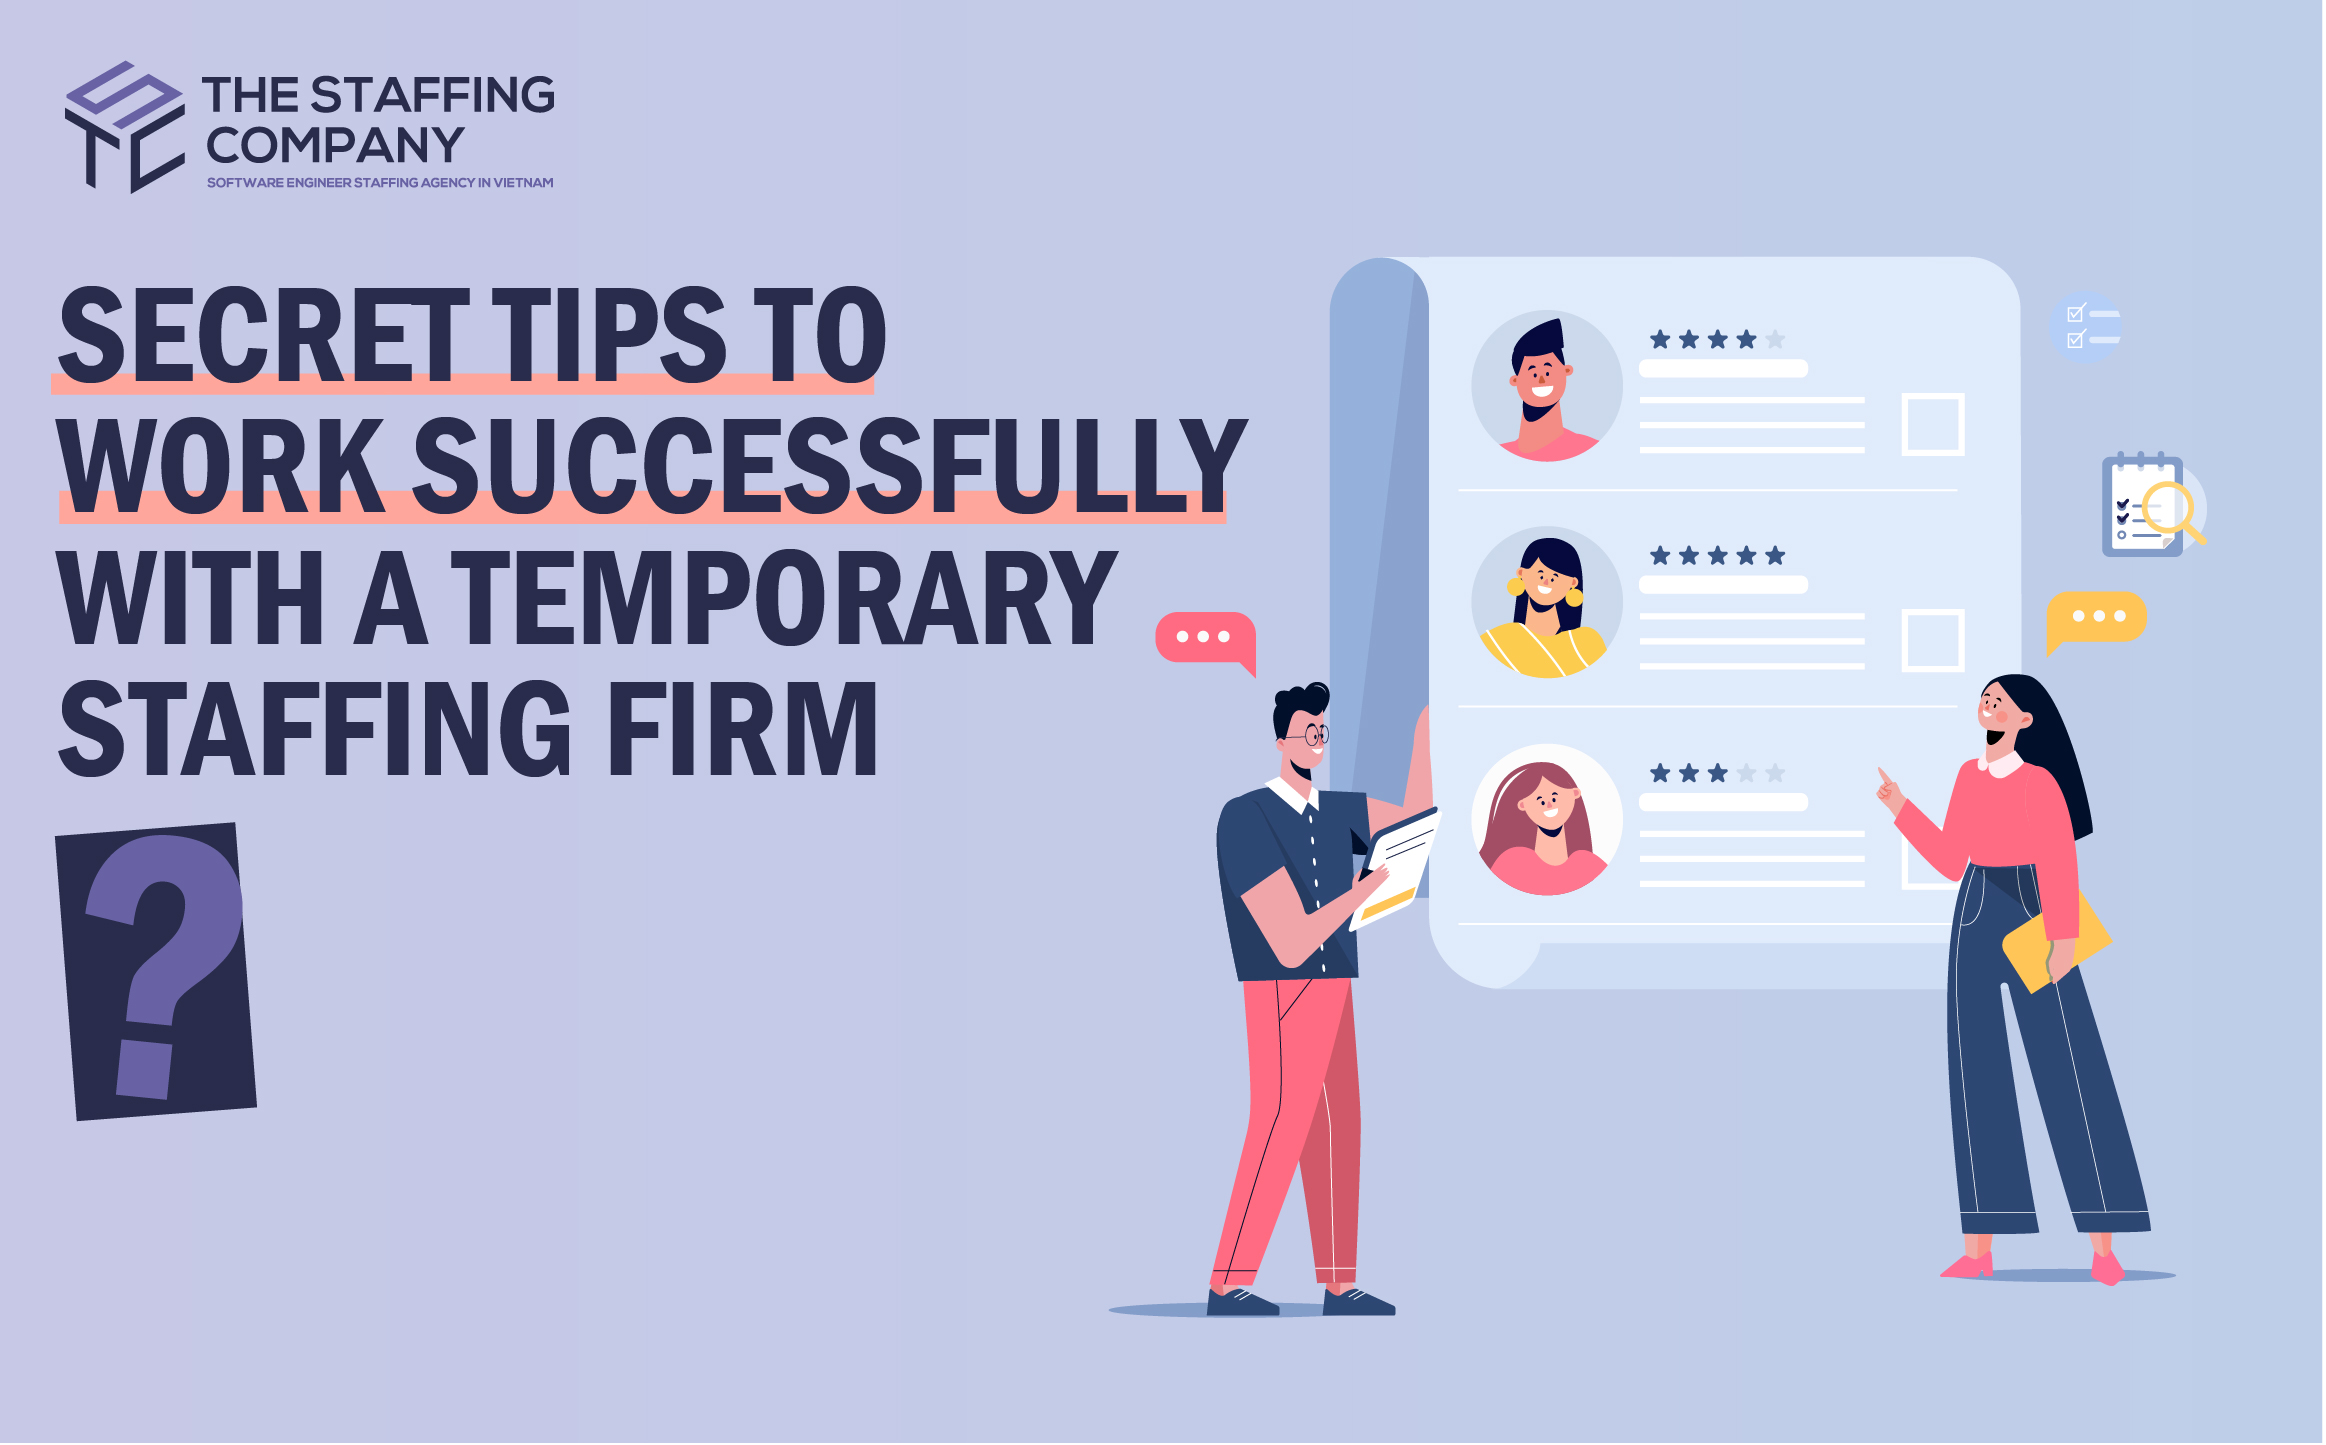 Secret Tips To Work Successfully With A Temporary Staffing Firm